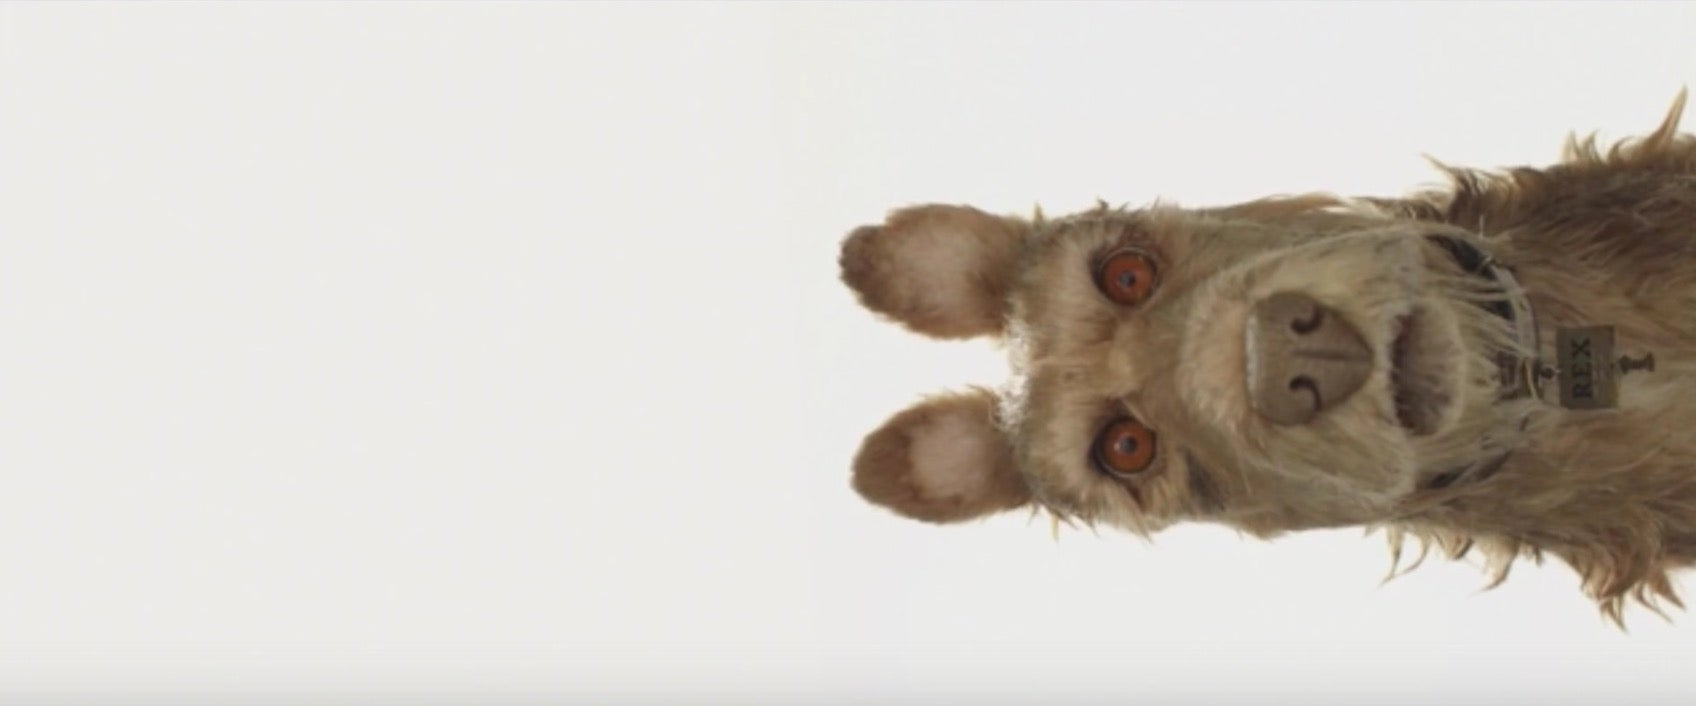 Wes Anderson Just Announced The Title And Cast Of His New Stop-Motion Animated Movie